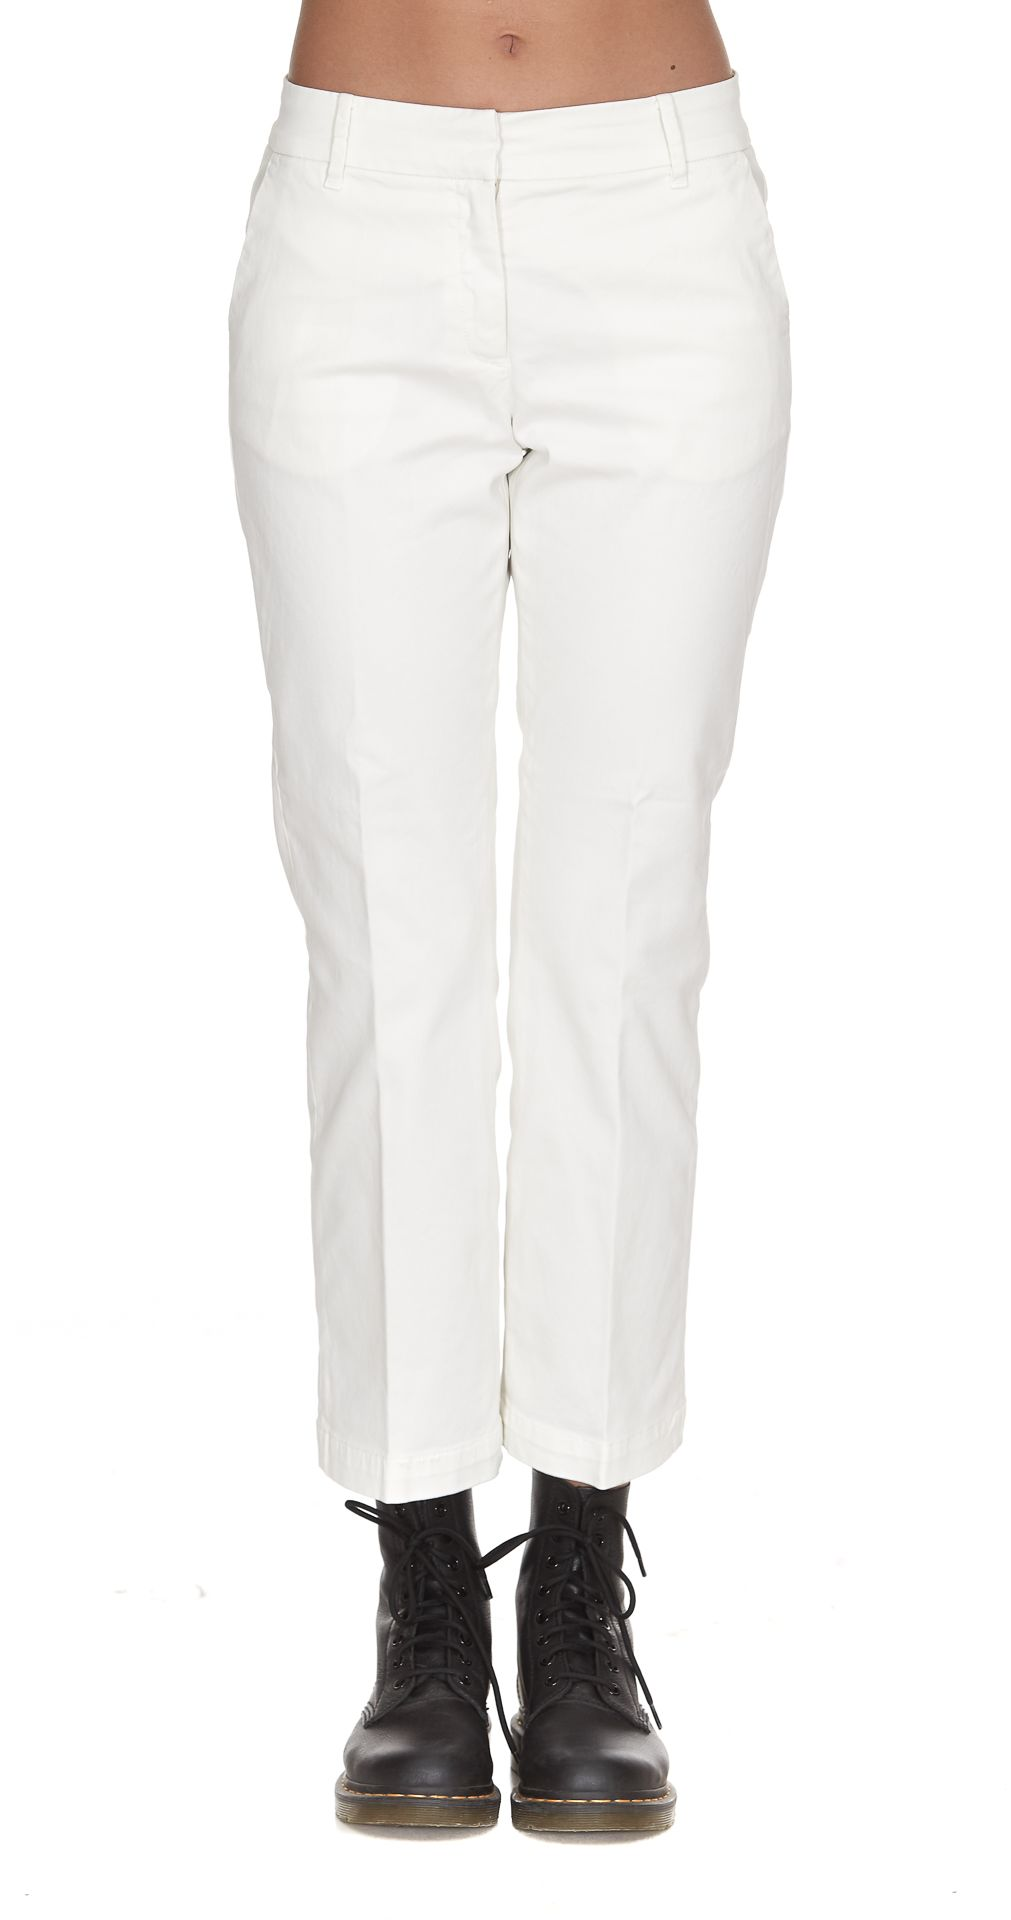 Department 5 Jet Trousers